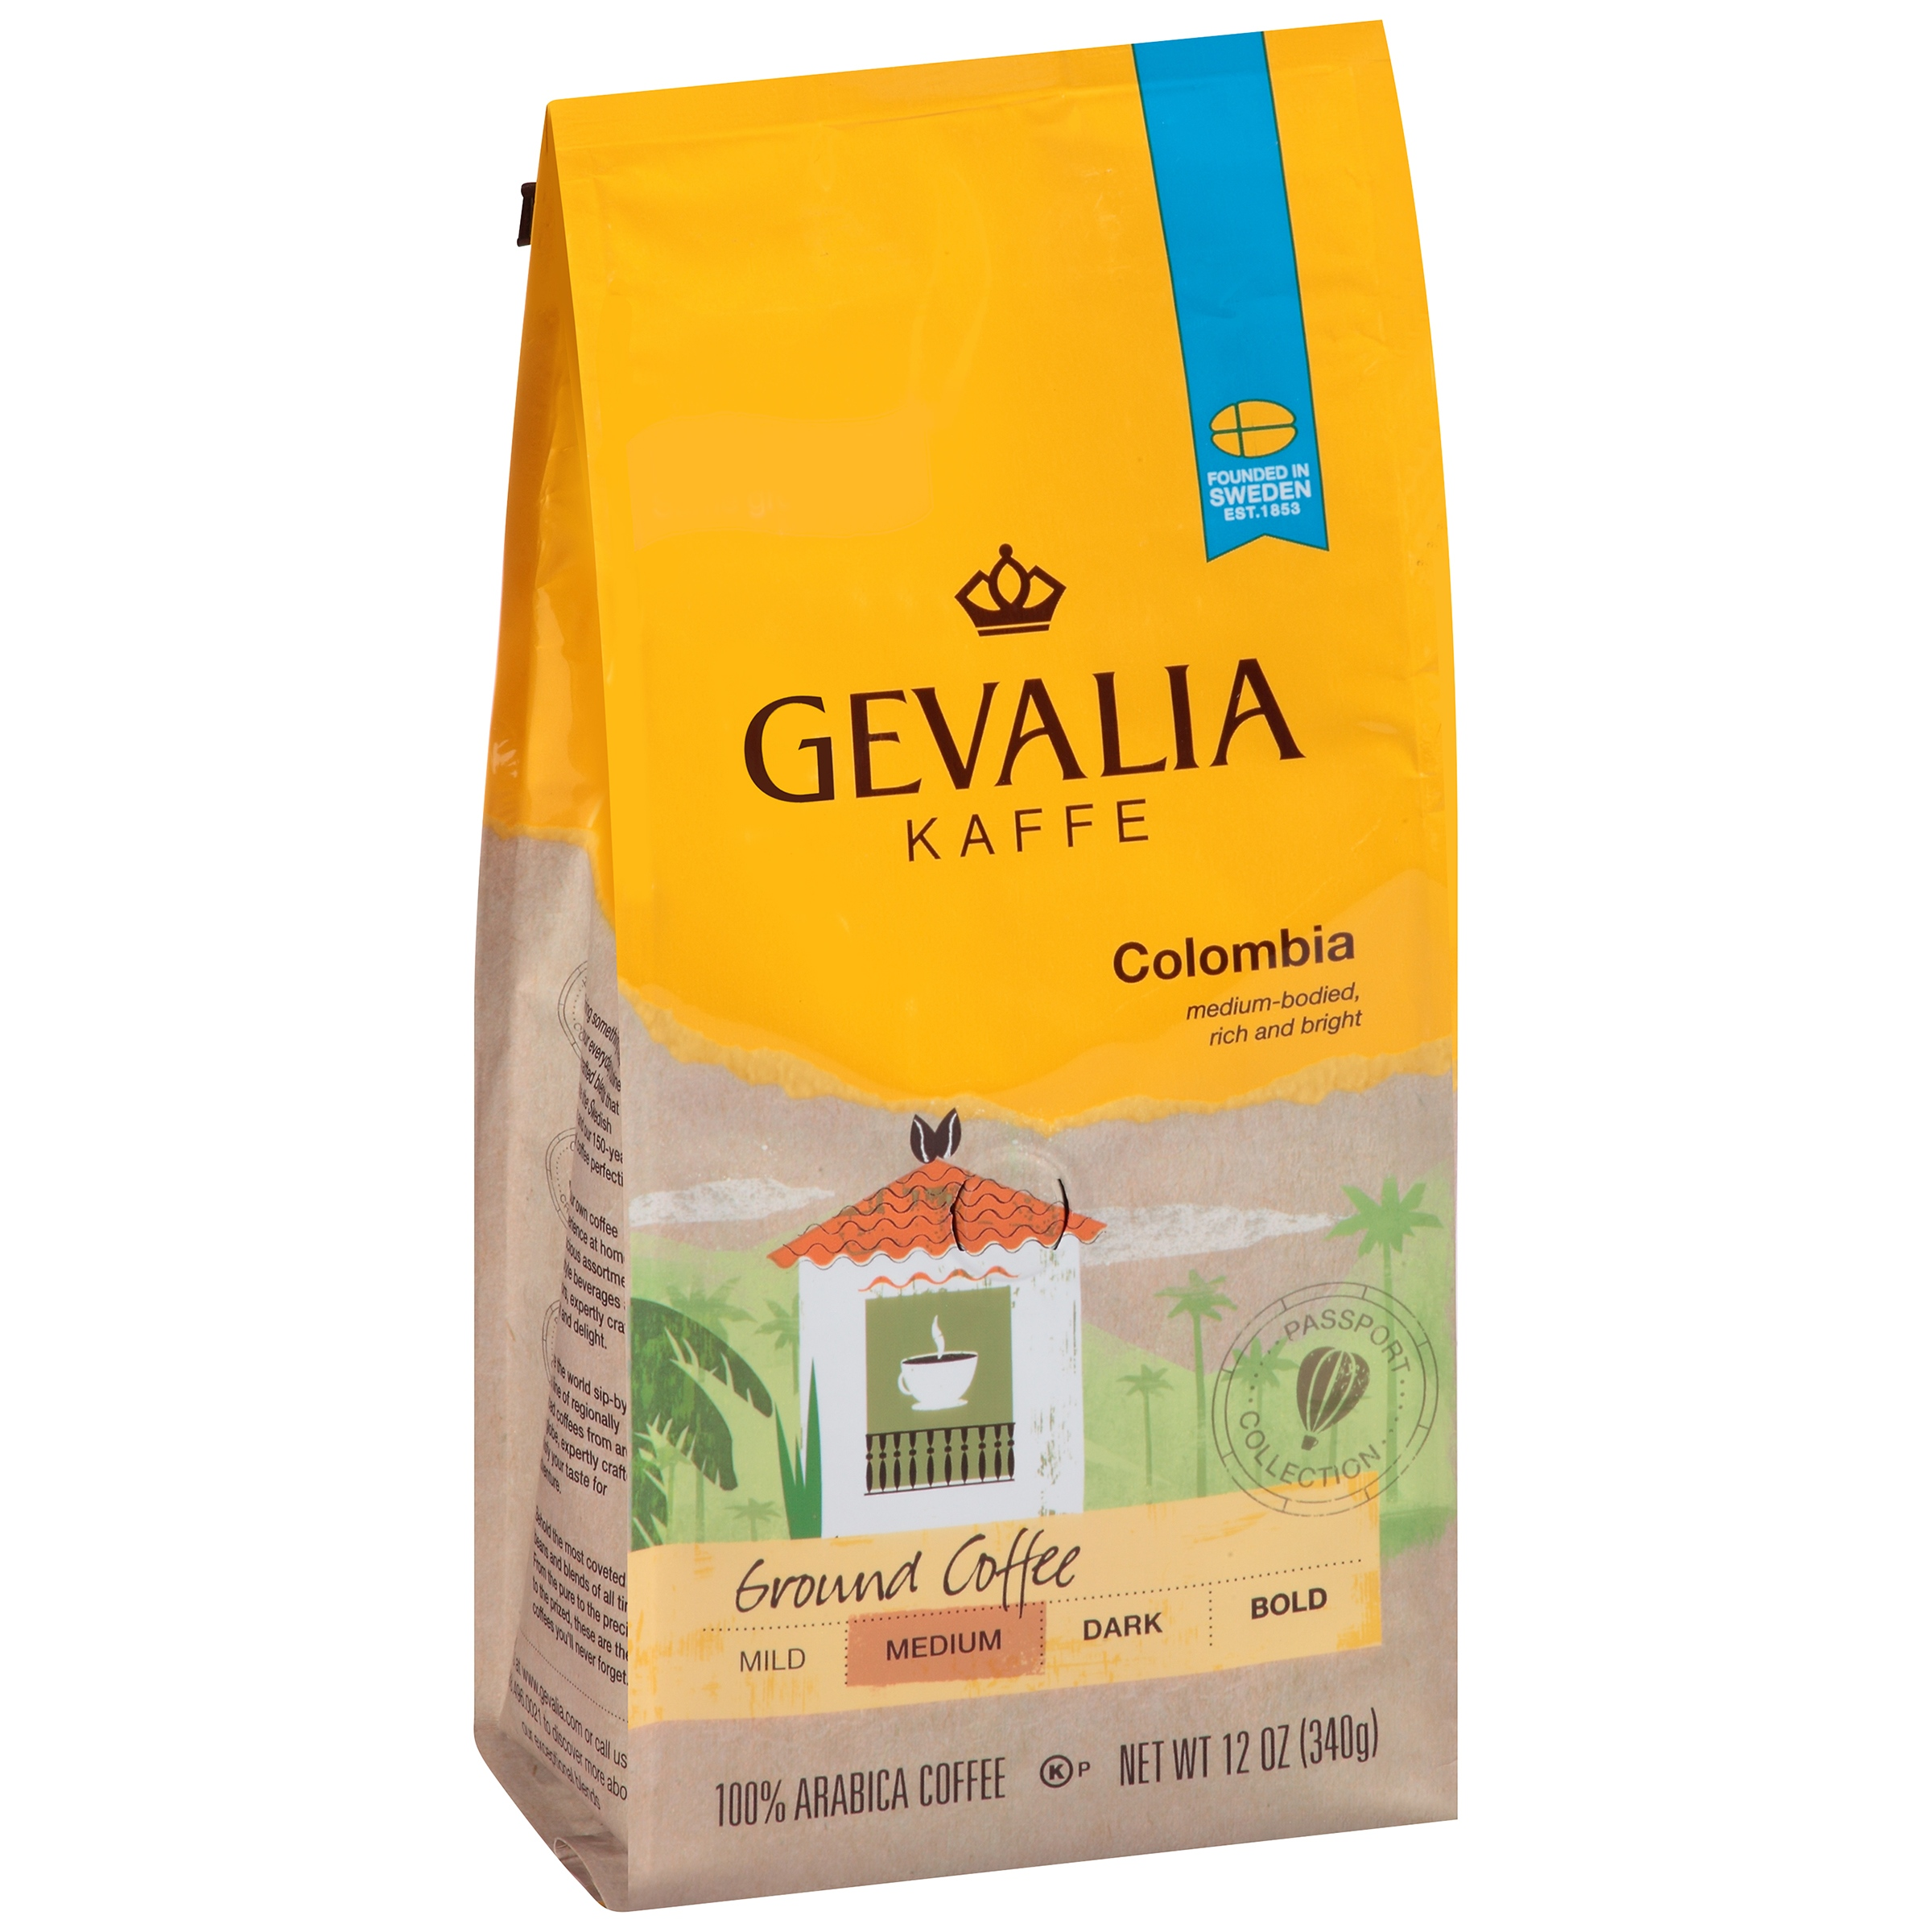 Gevalia Kaffe Colombia Medium Roast Ground Coffee, 12 Oz